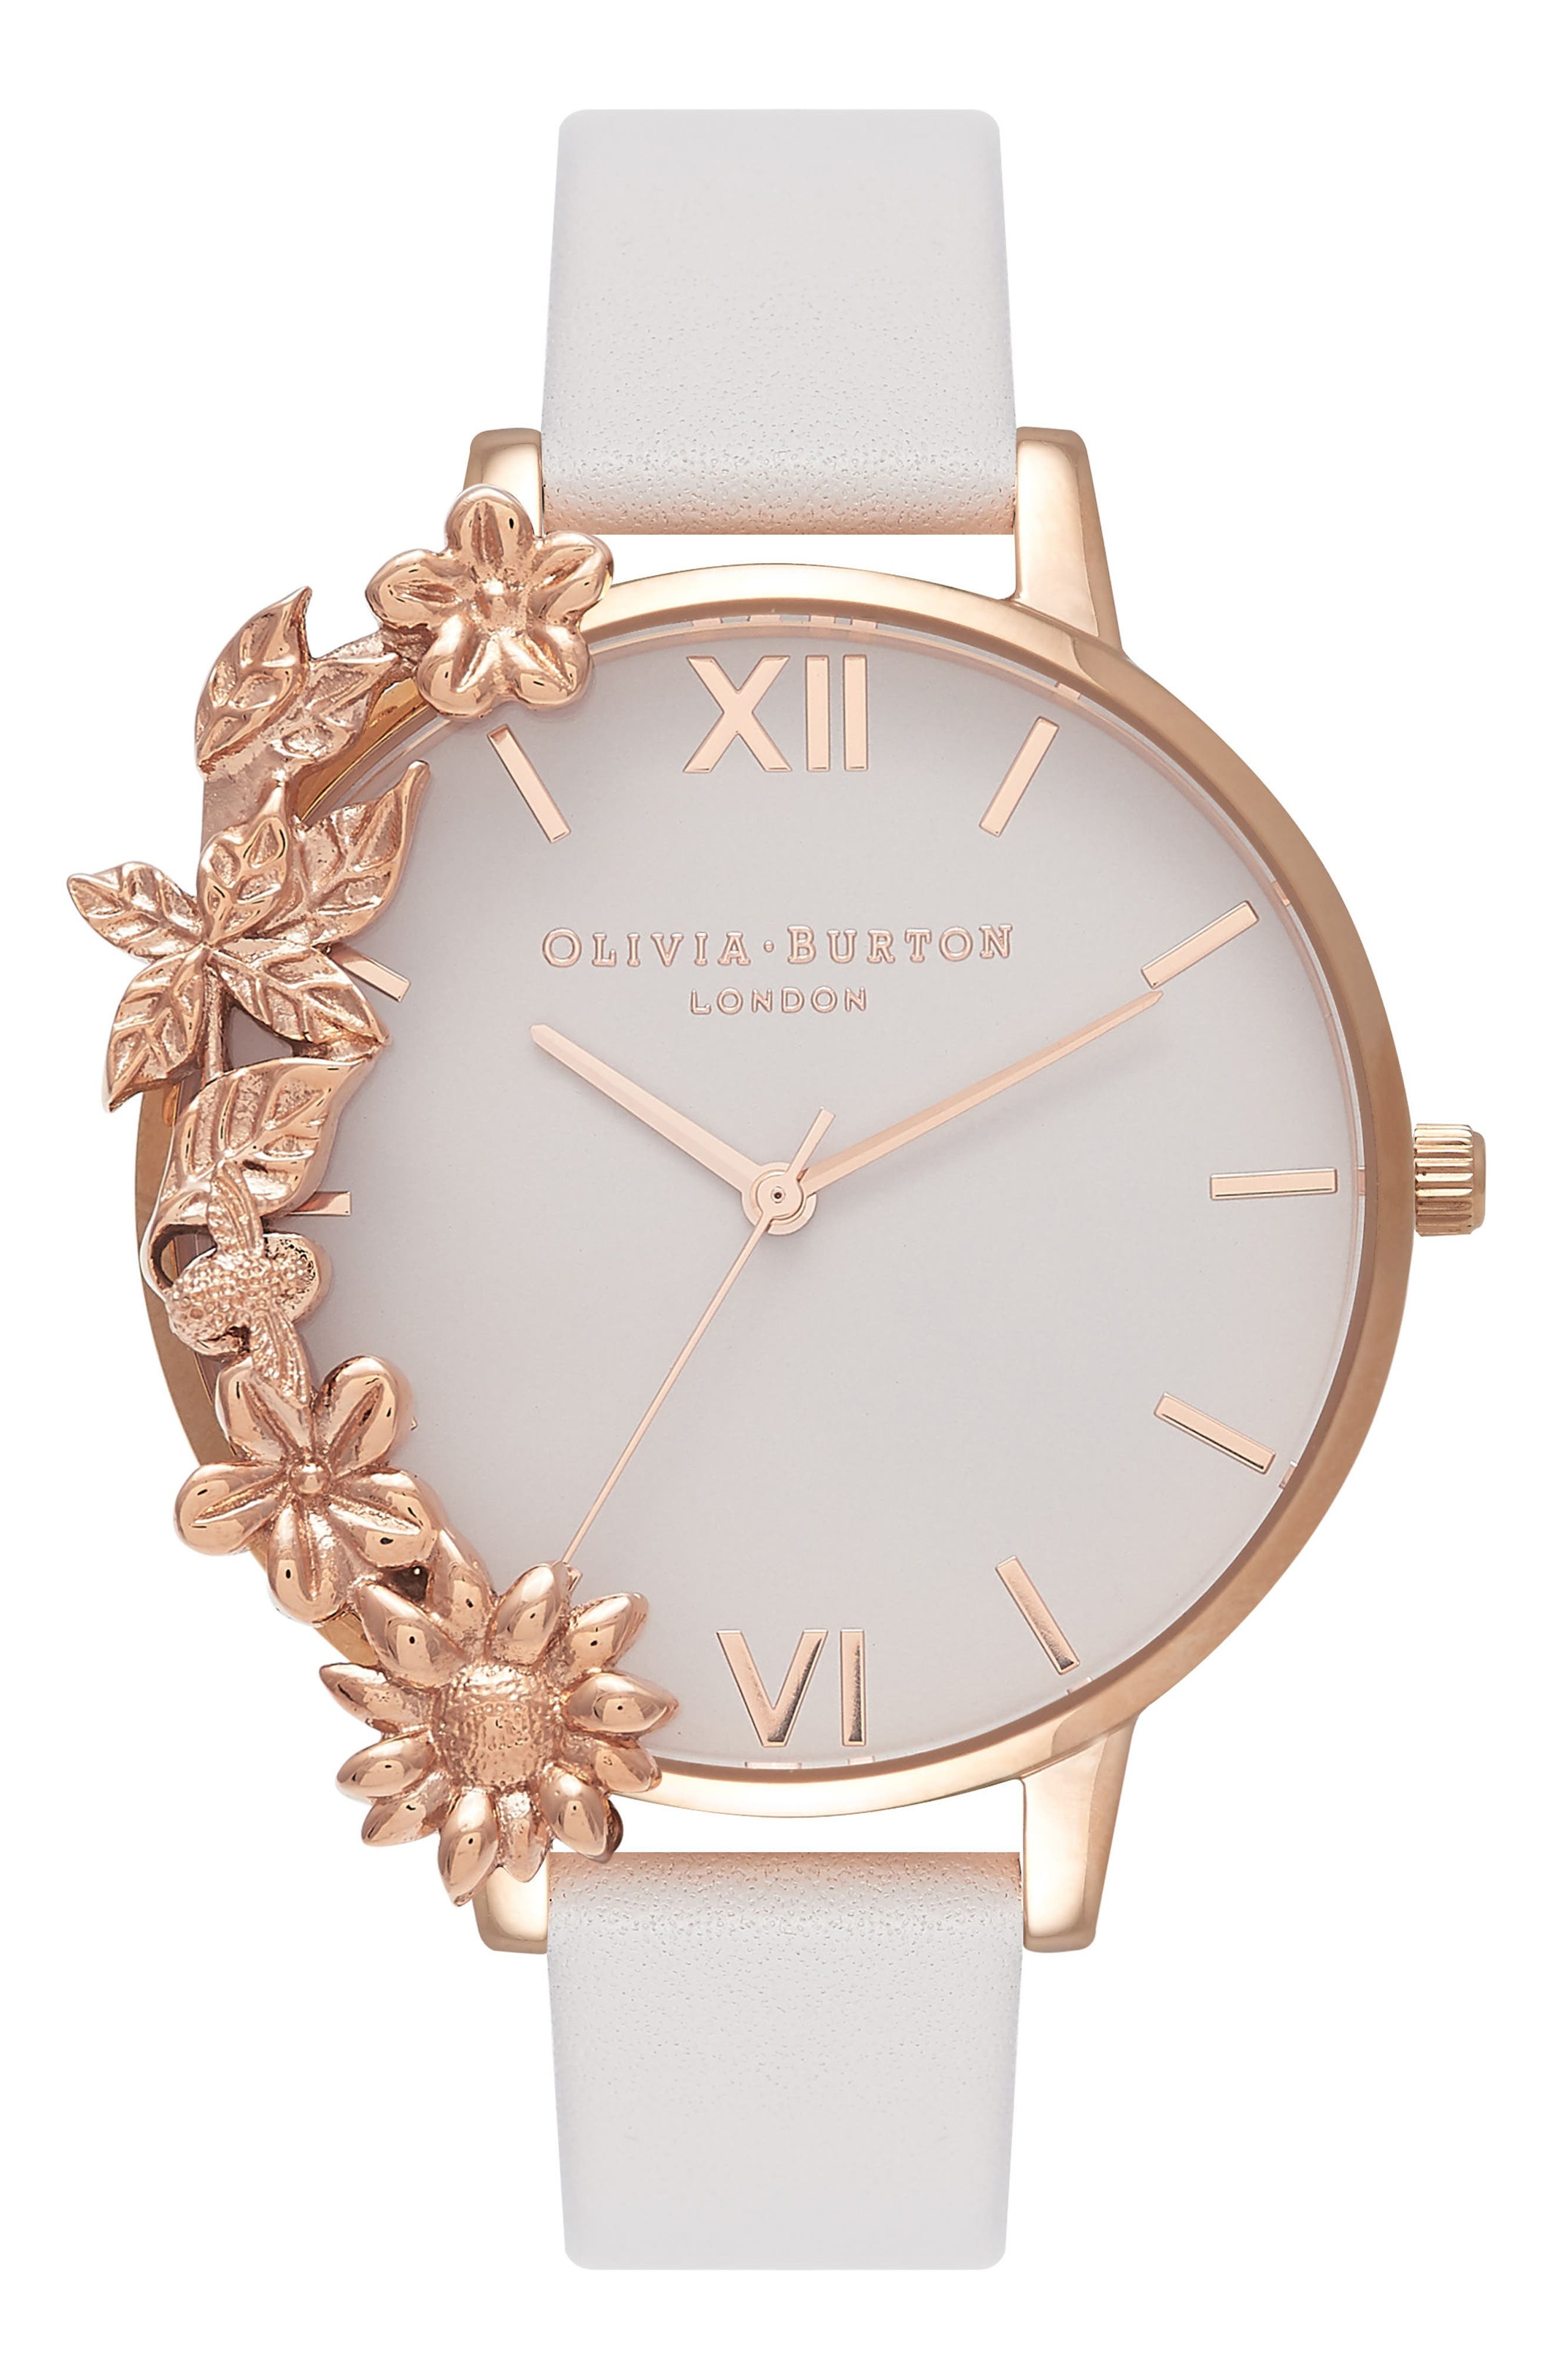 Case Cuff Leather Strap Watch, 38mm,                         Main,                         color, BLUSH/ WHITE/ ROSE GOLD